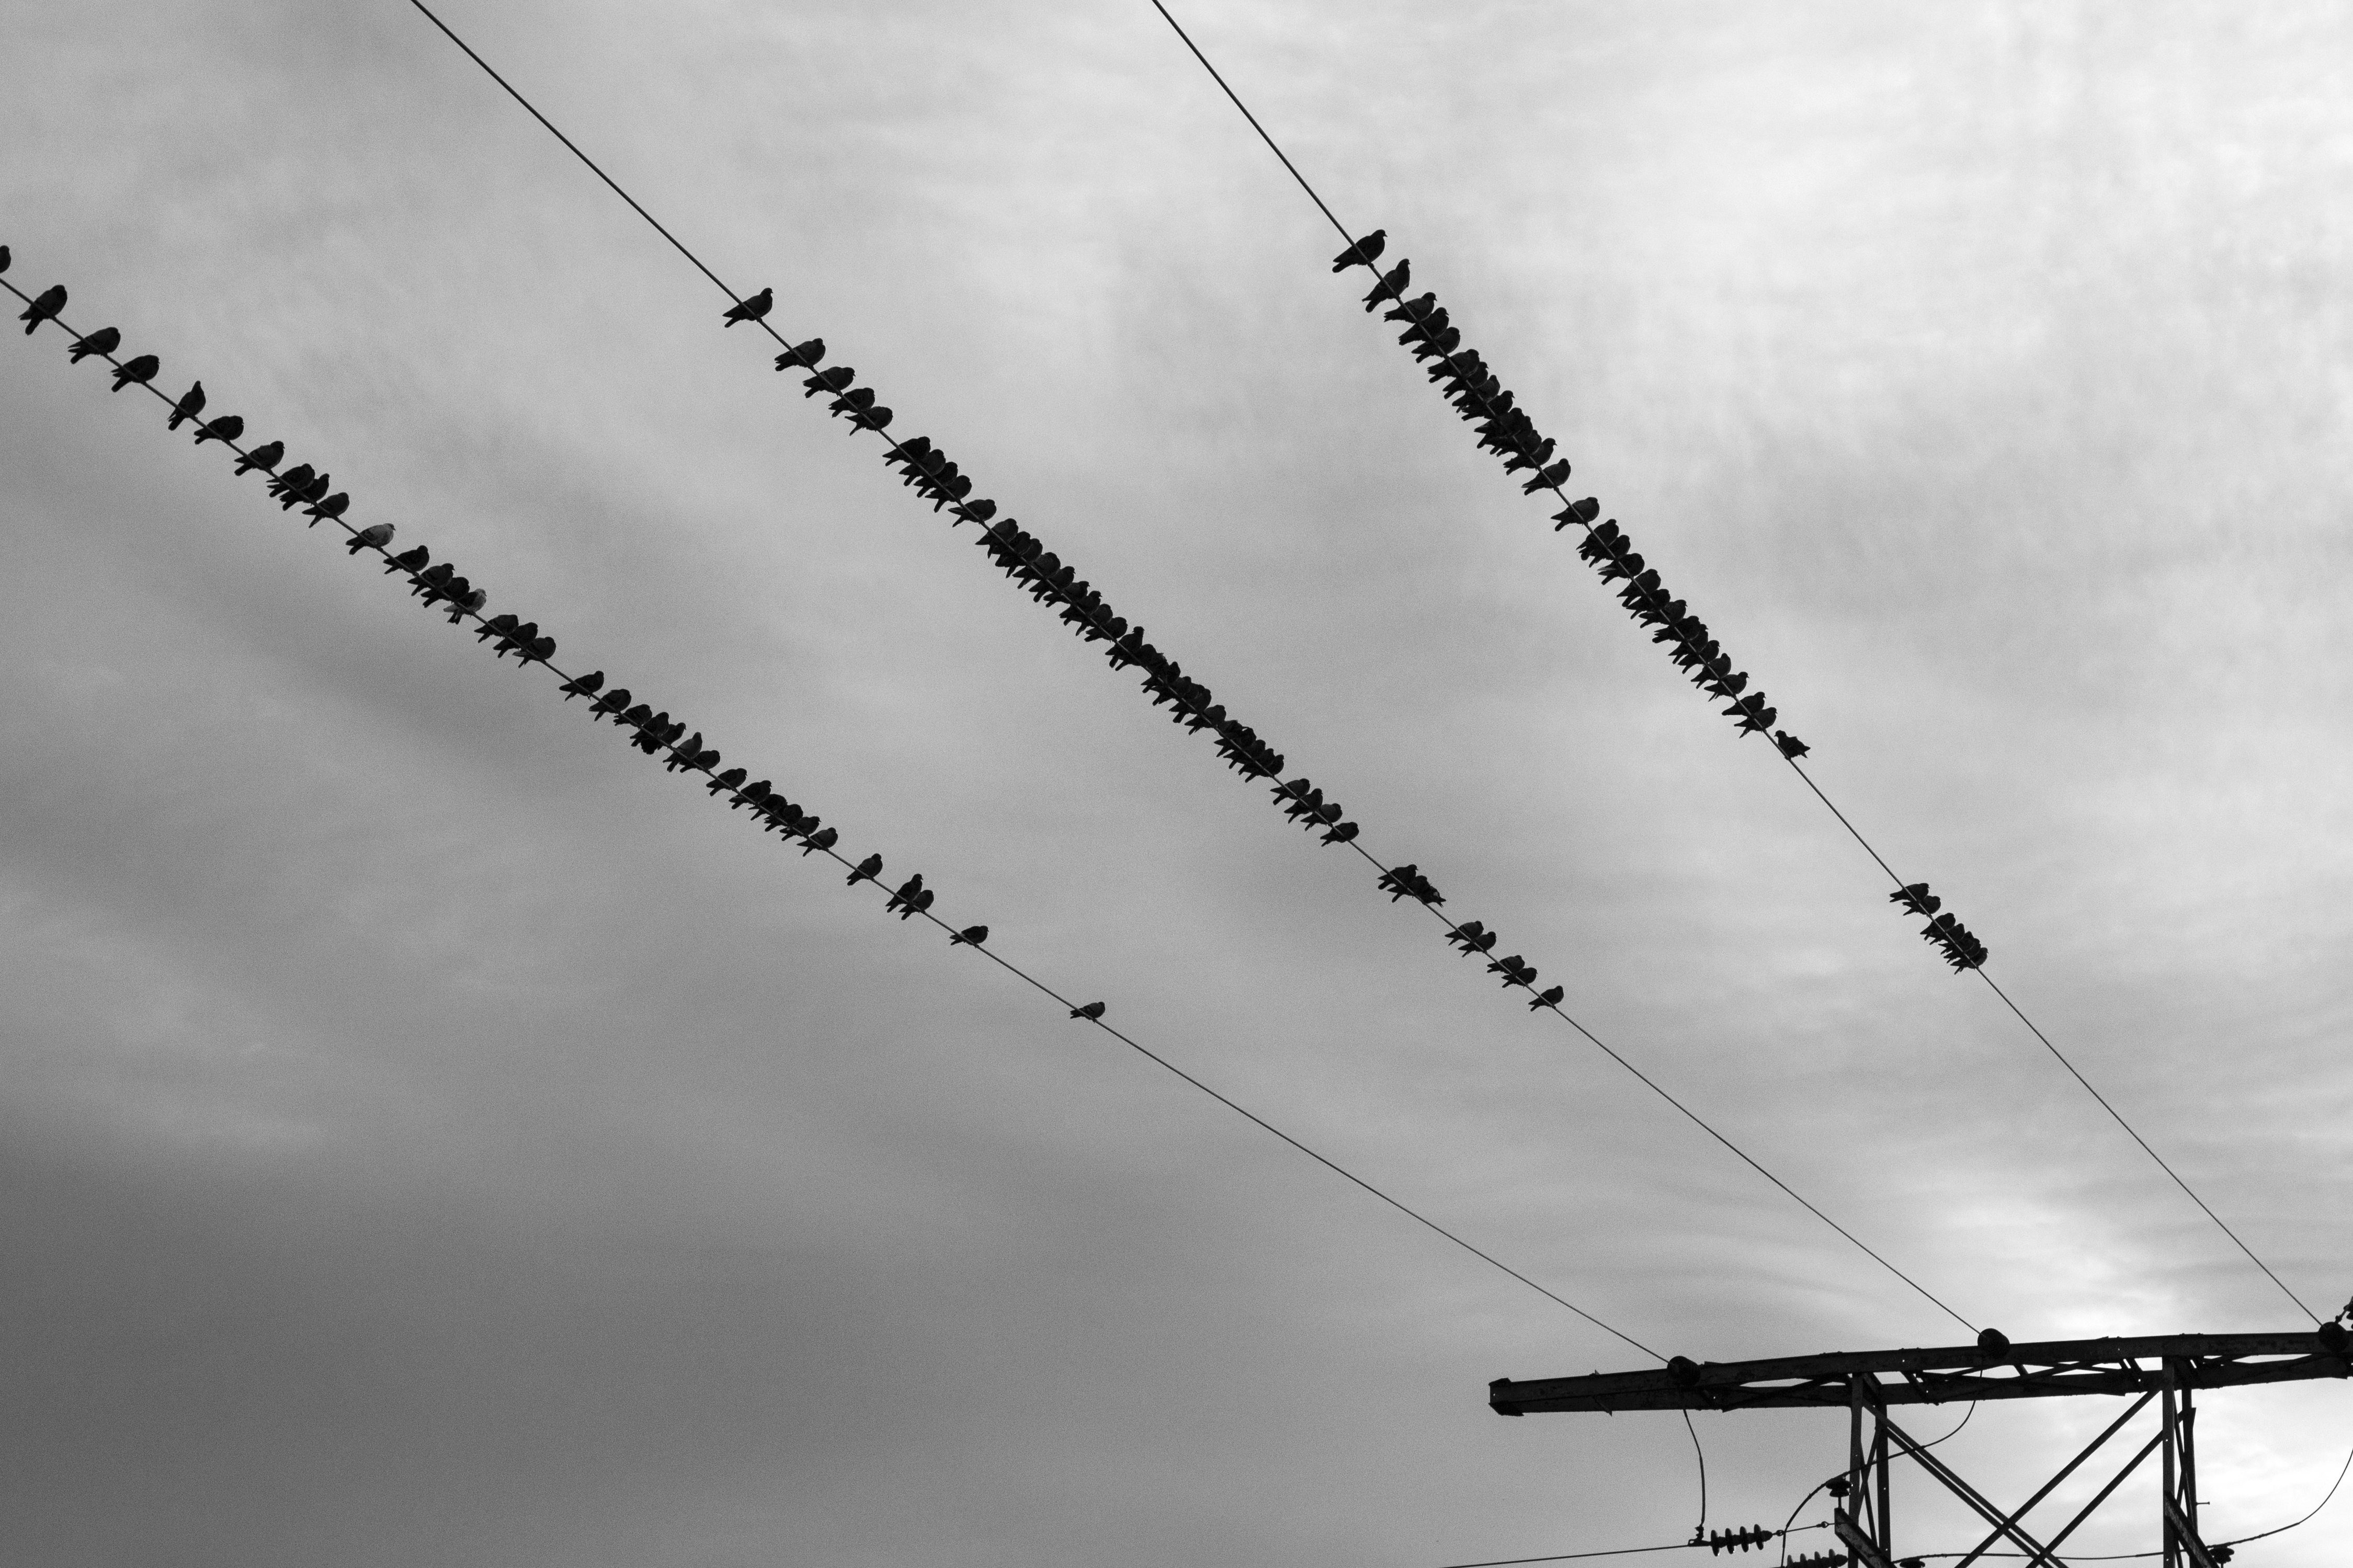 Free picture: flock, bird, wire, electricity, sky